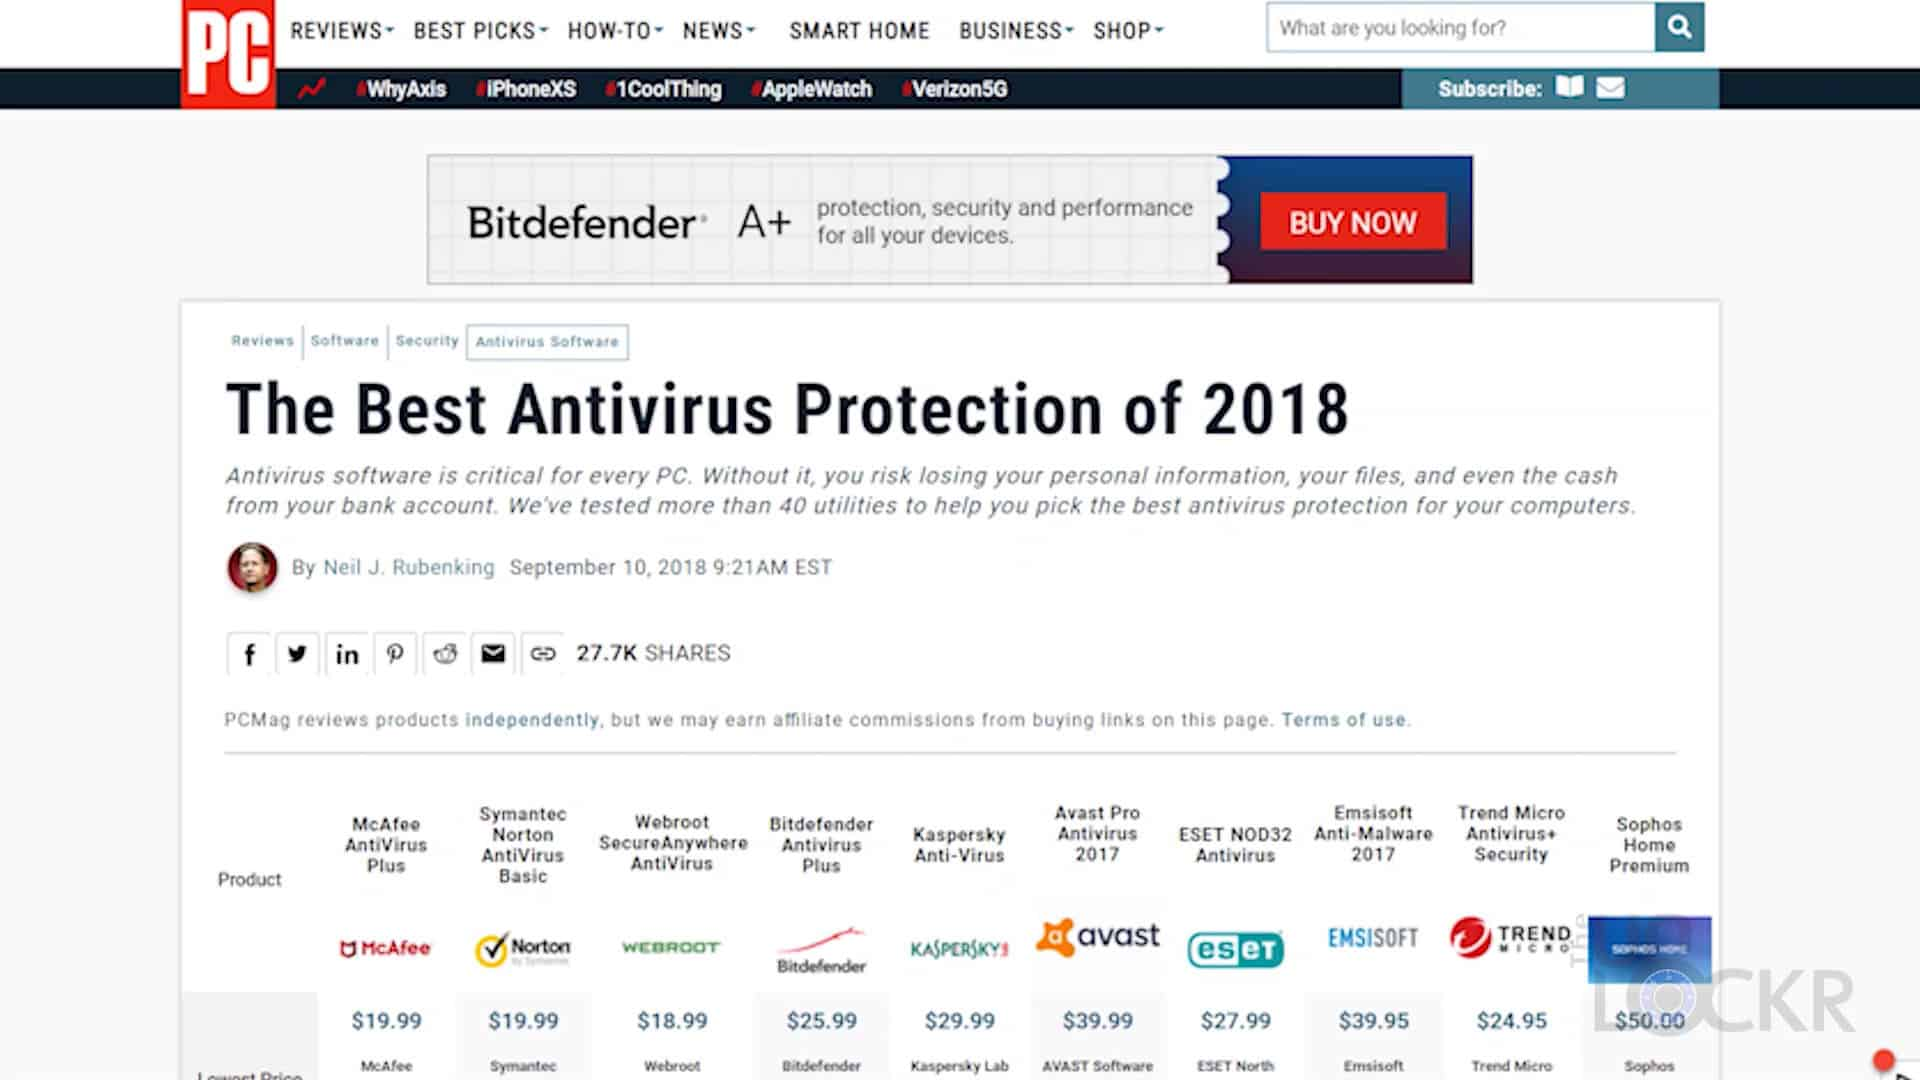 Best Antivirus Software in 2018?